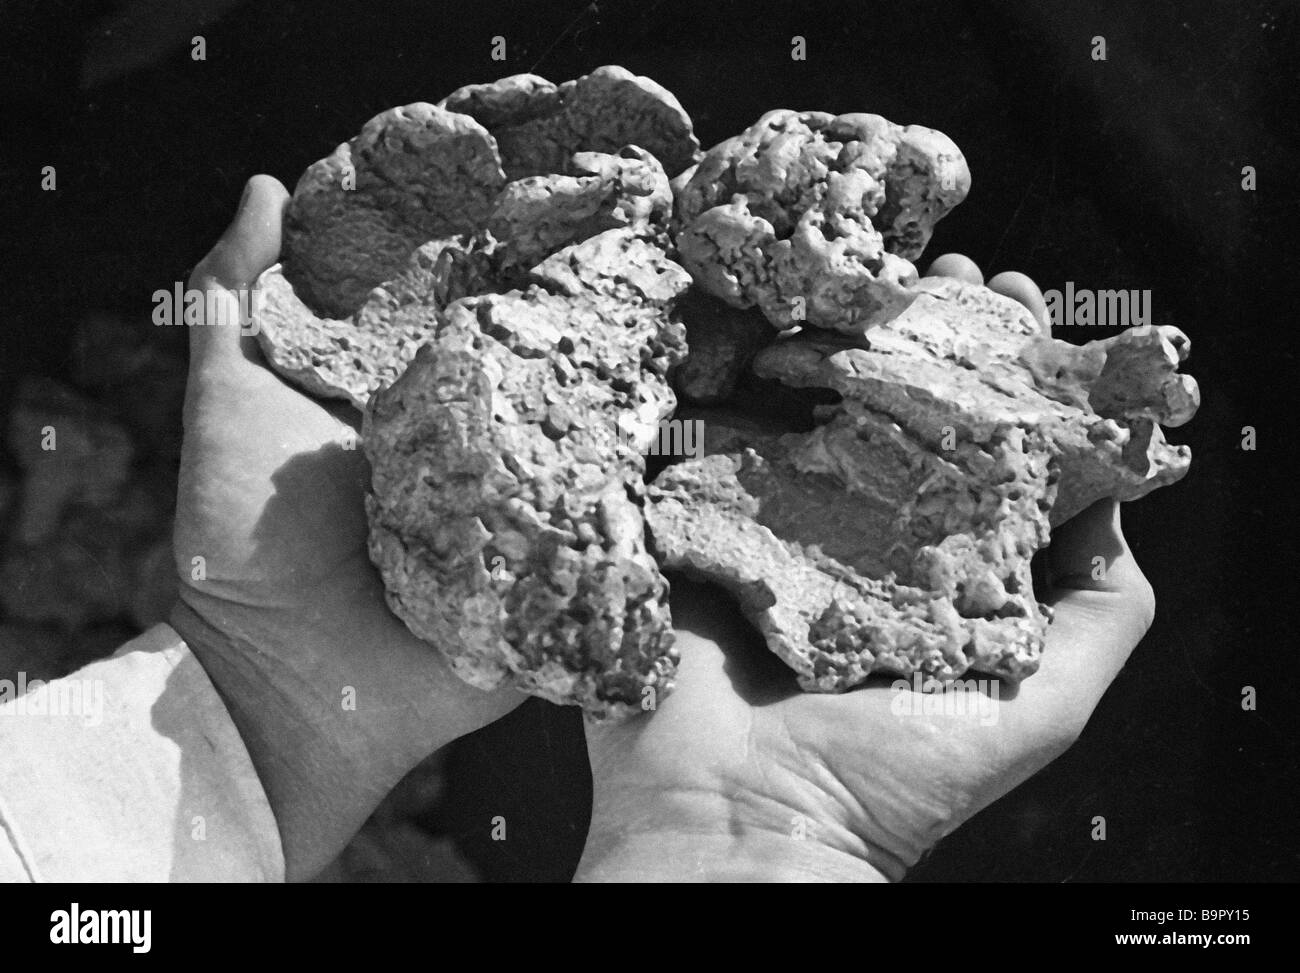 A gold nugget weighing 2 5 kg - Stock Image